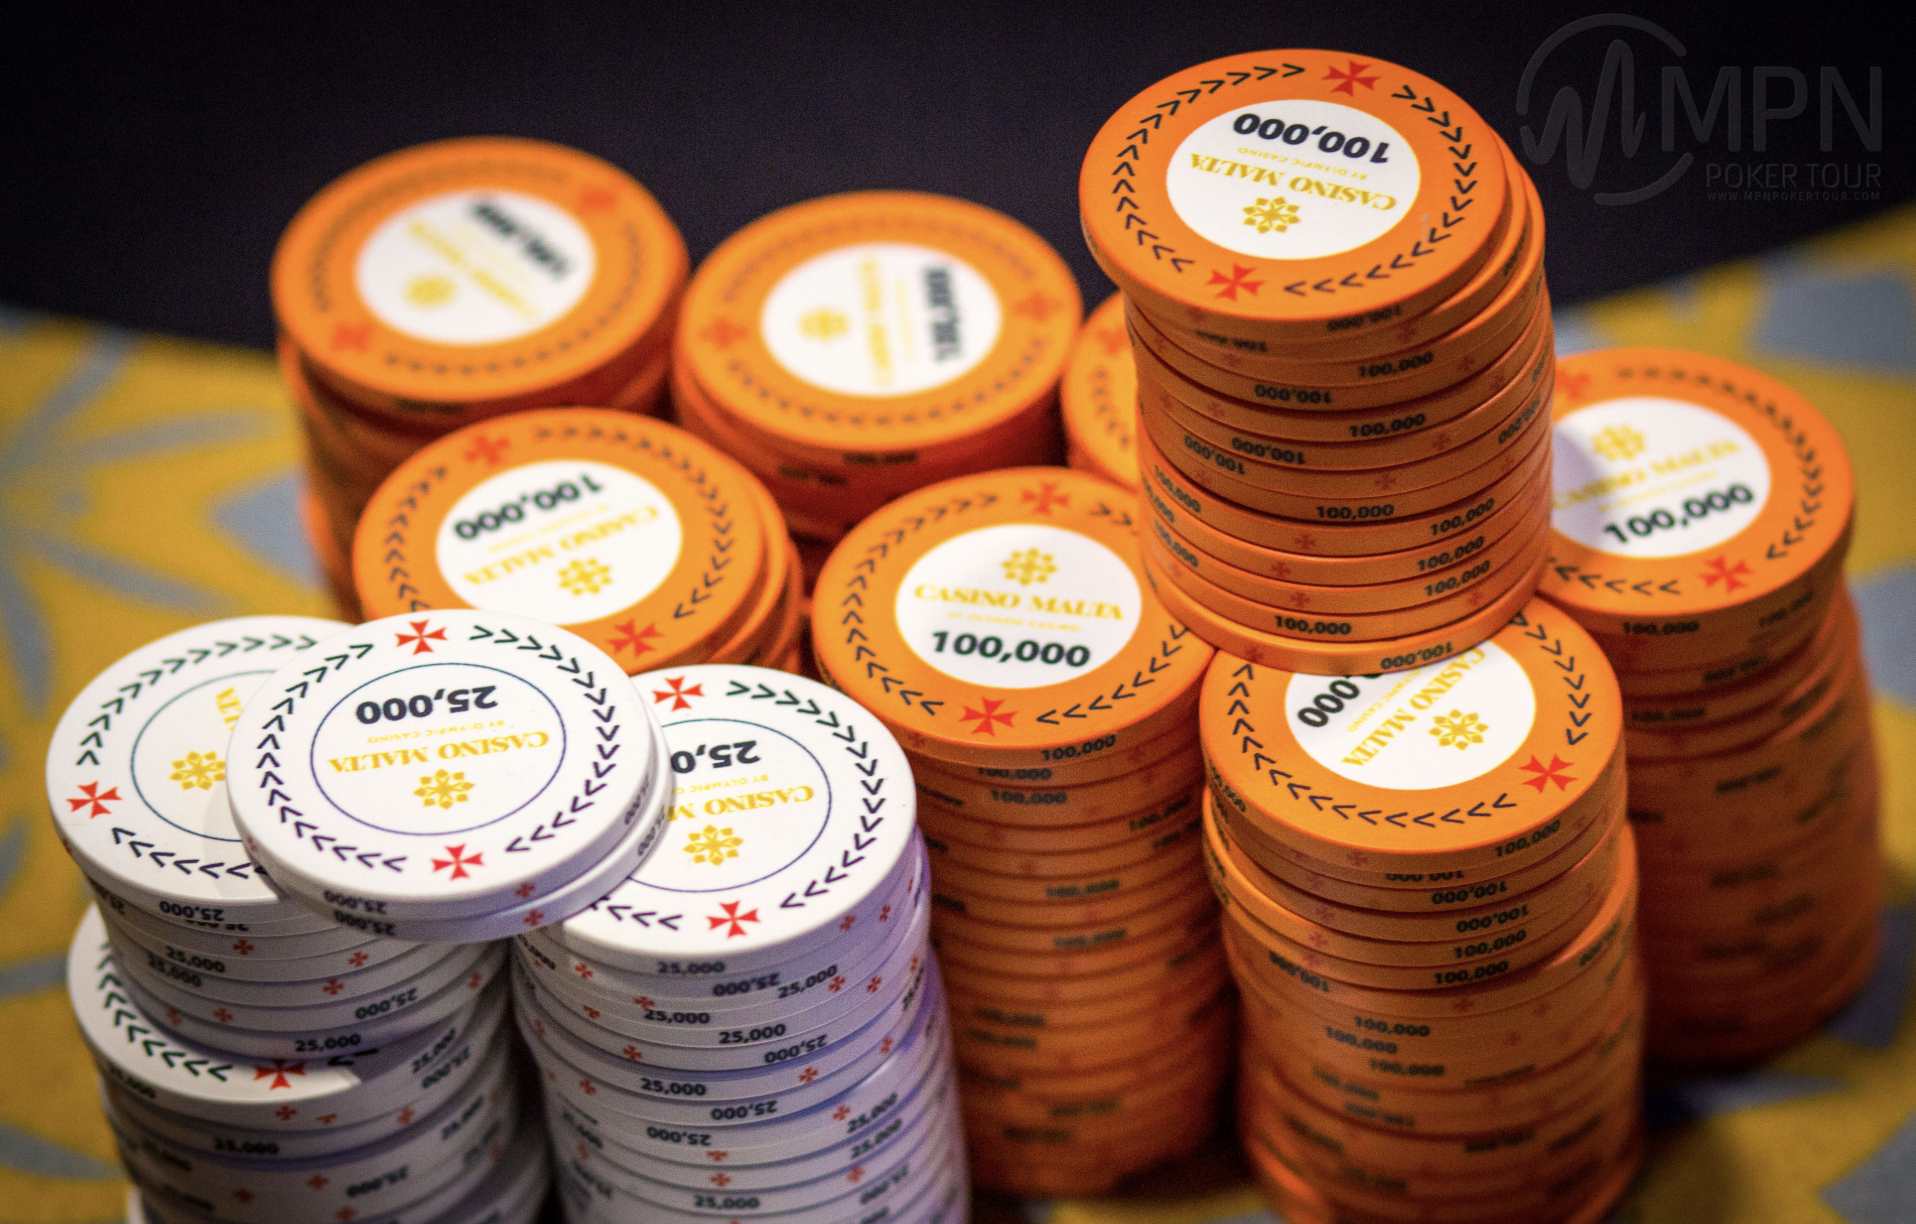 mpn poker tour chips